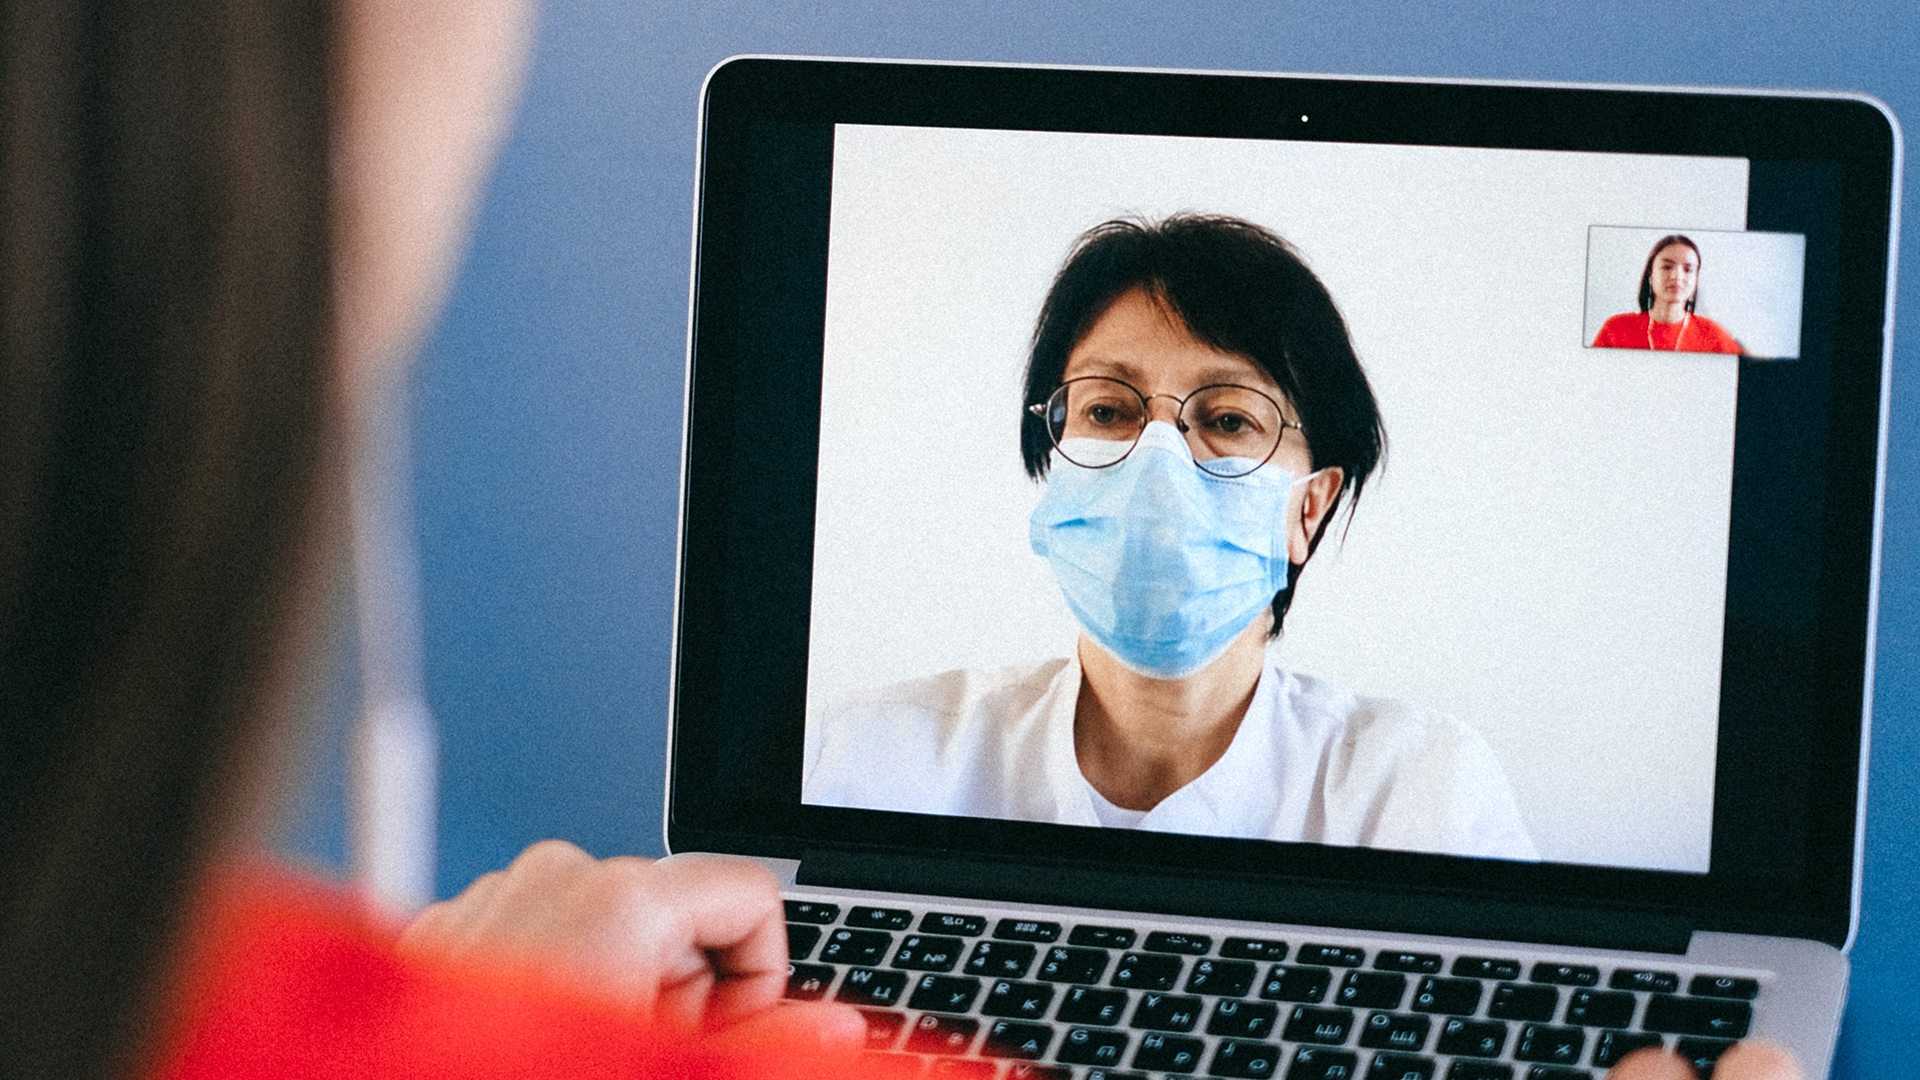 Telemedicine allows patients to stay home and reduce the risk of prior patient contamination.